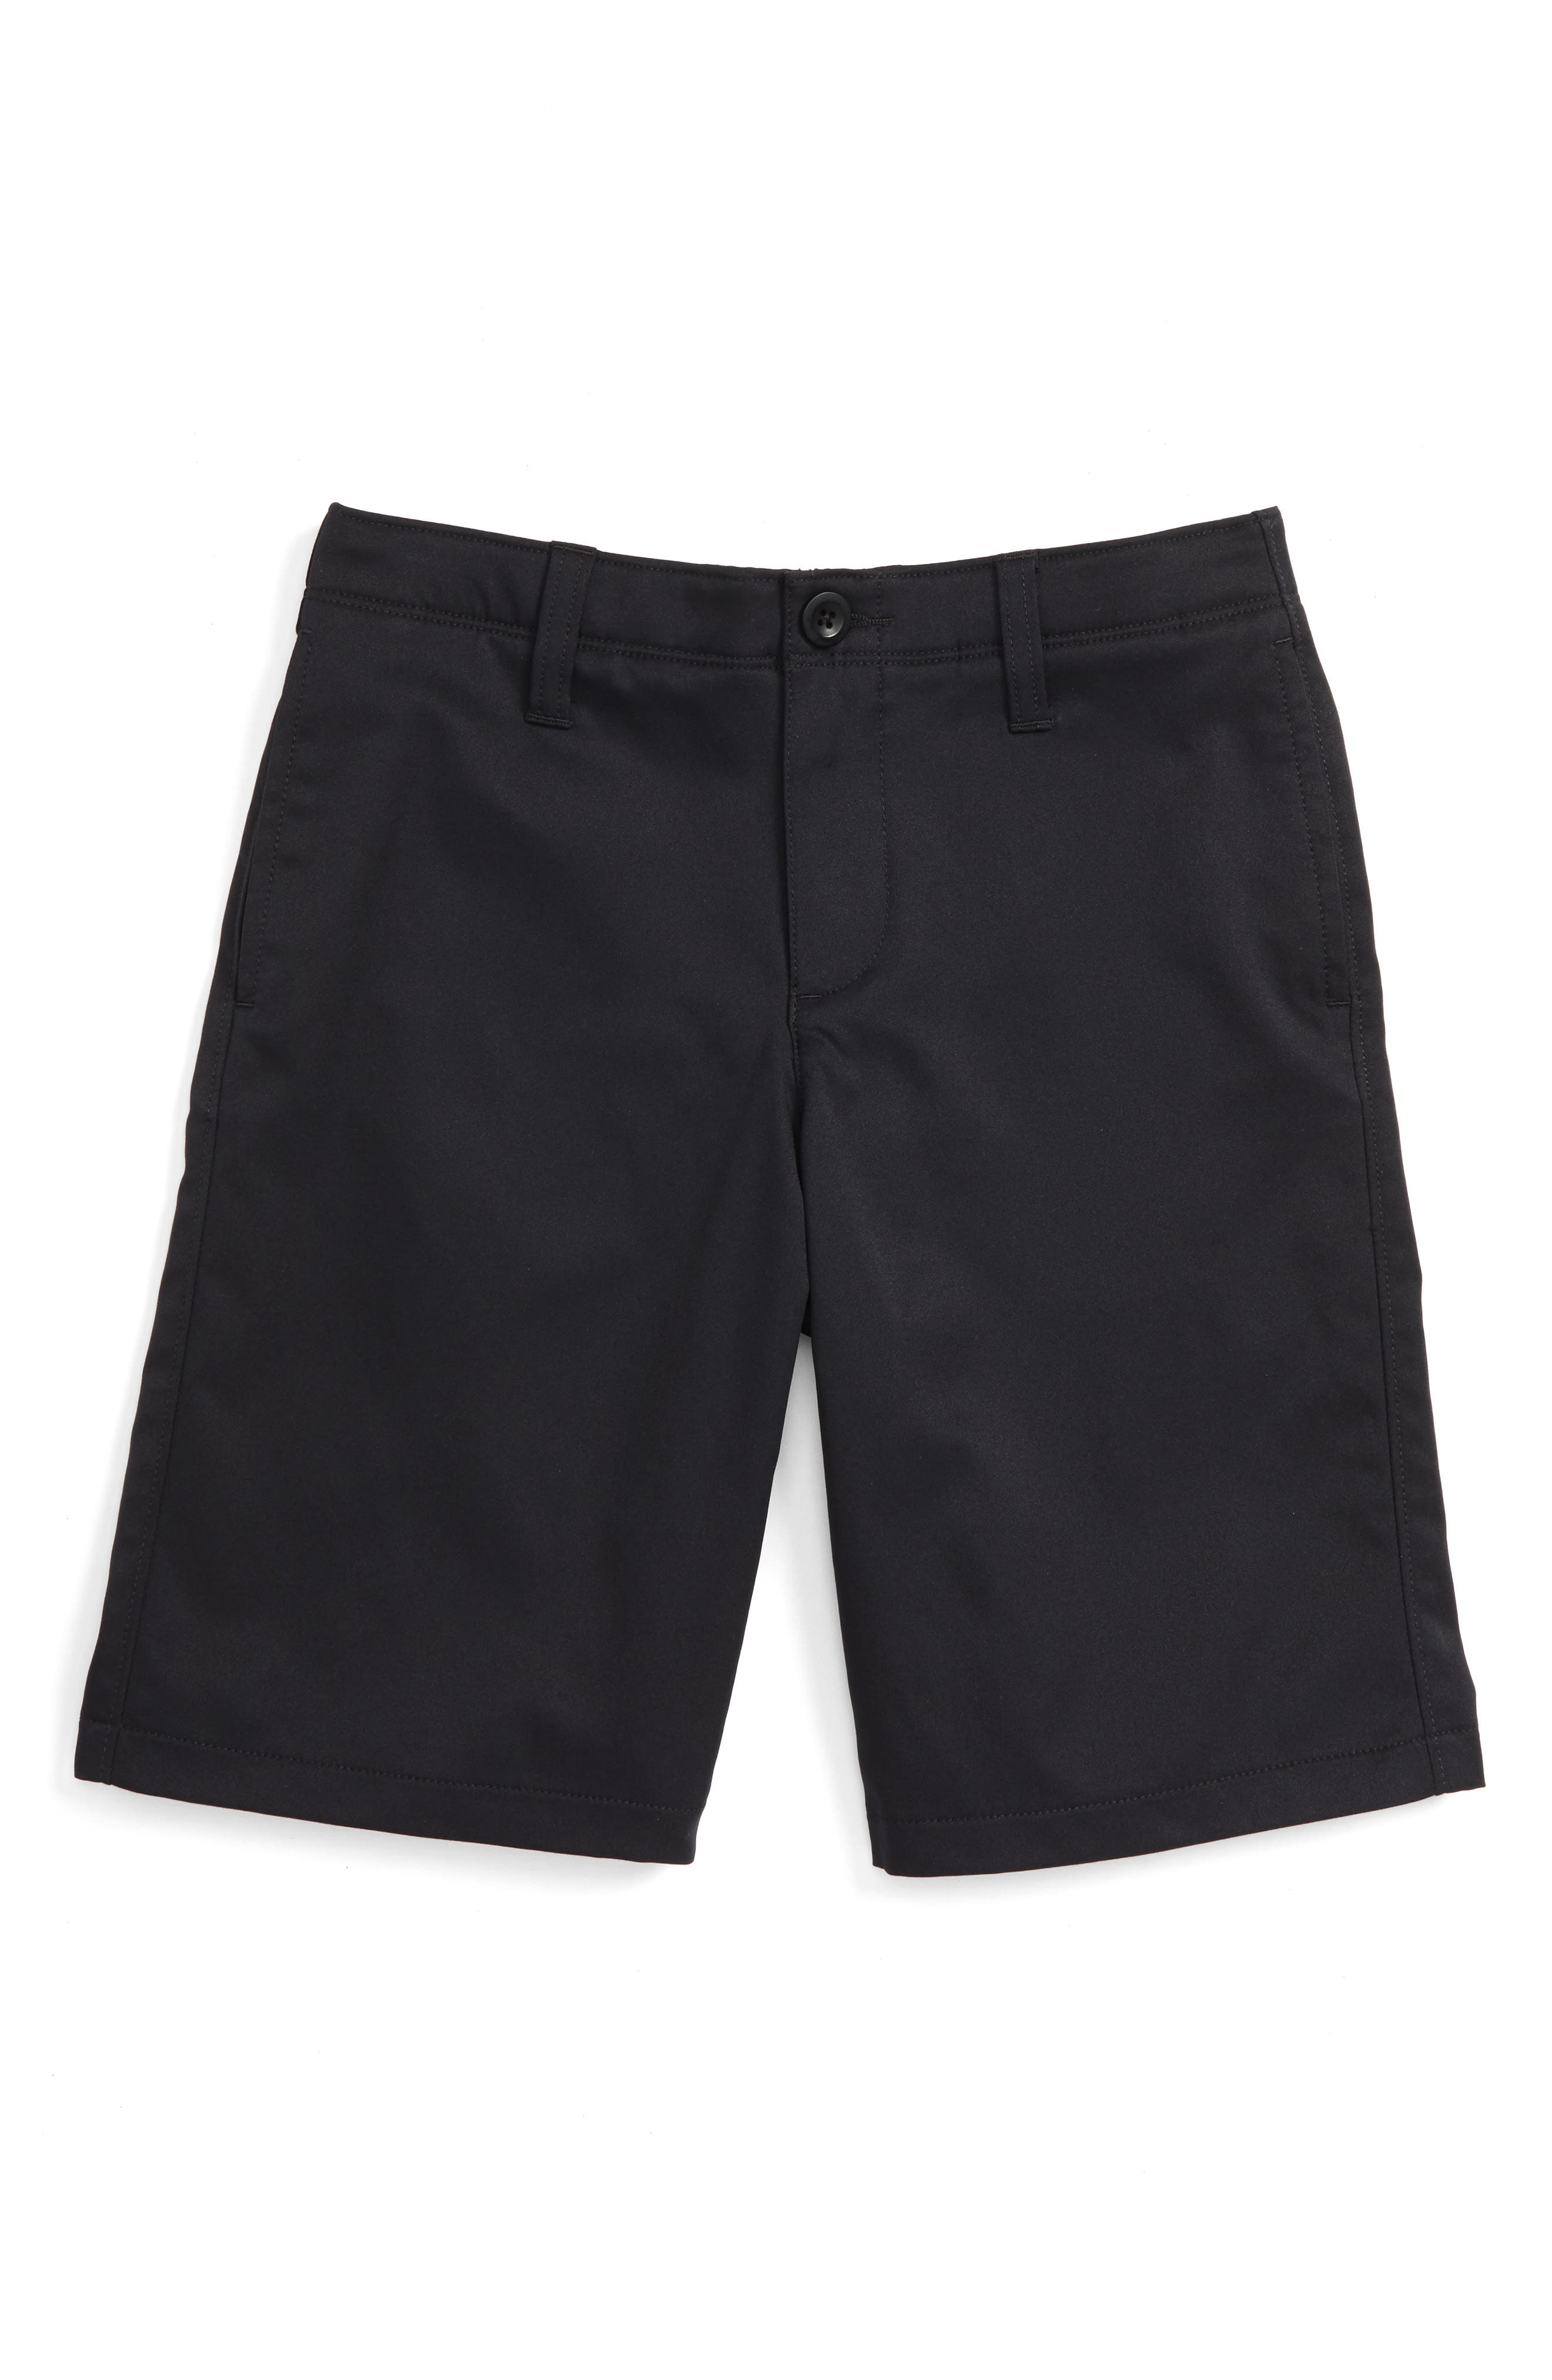 UNDER ARMOUR Match Play Shorts, Main, color, BLACK